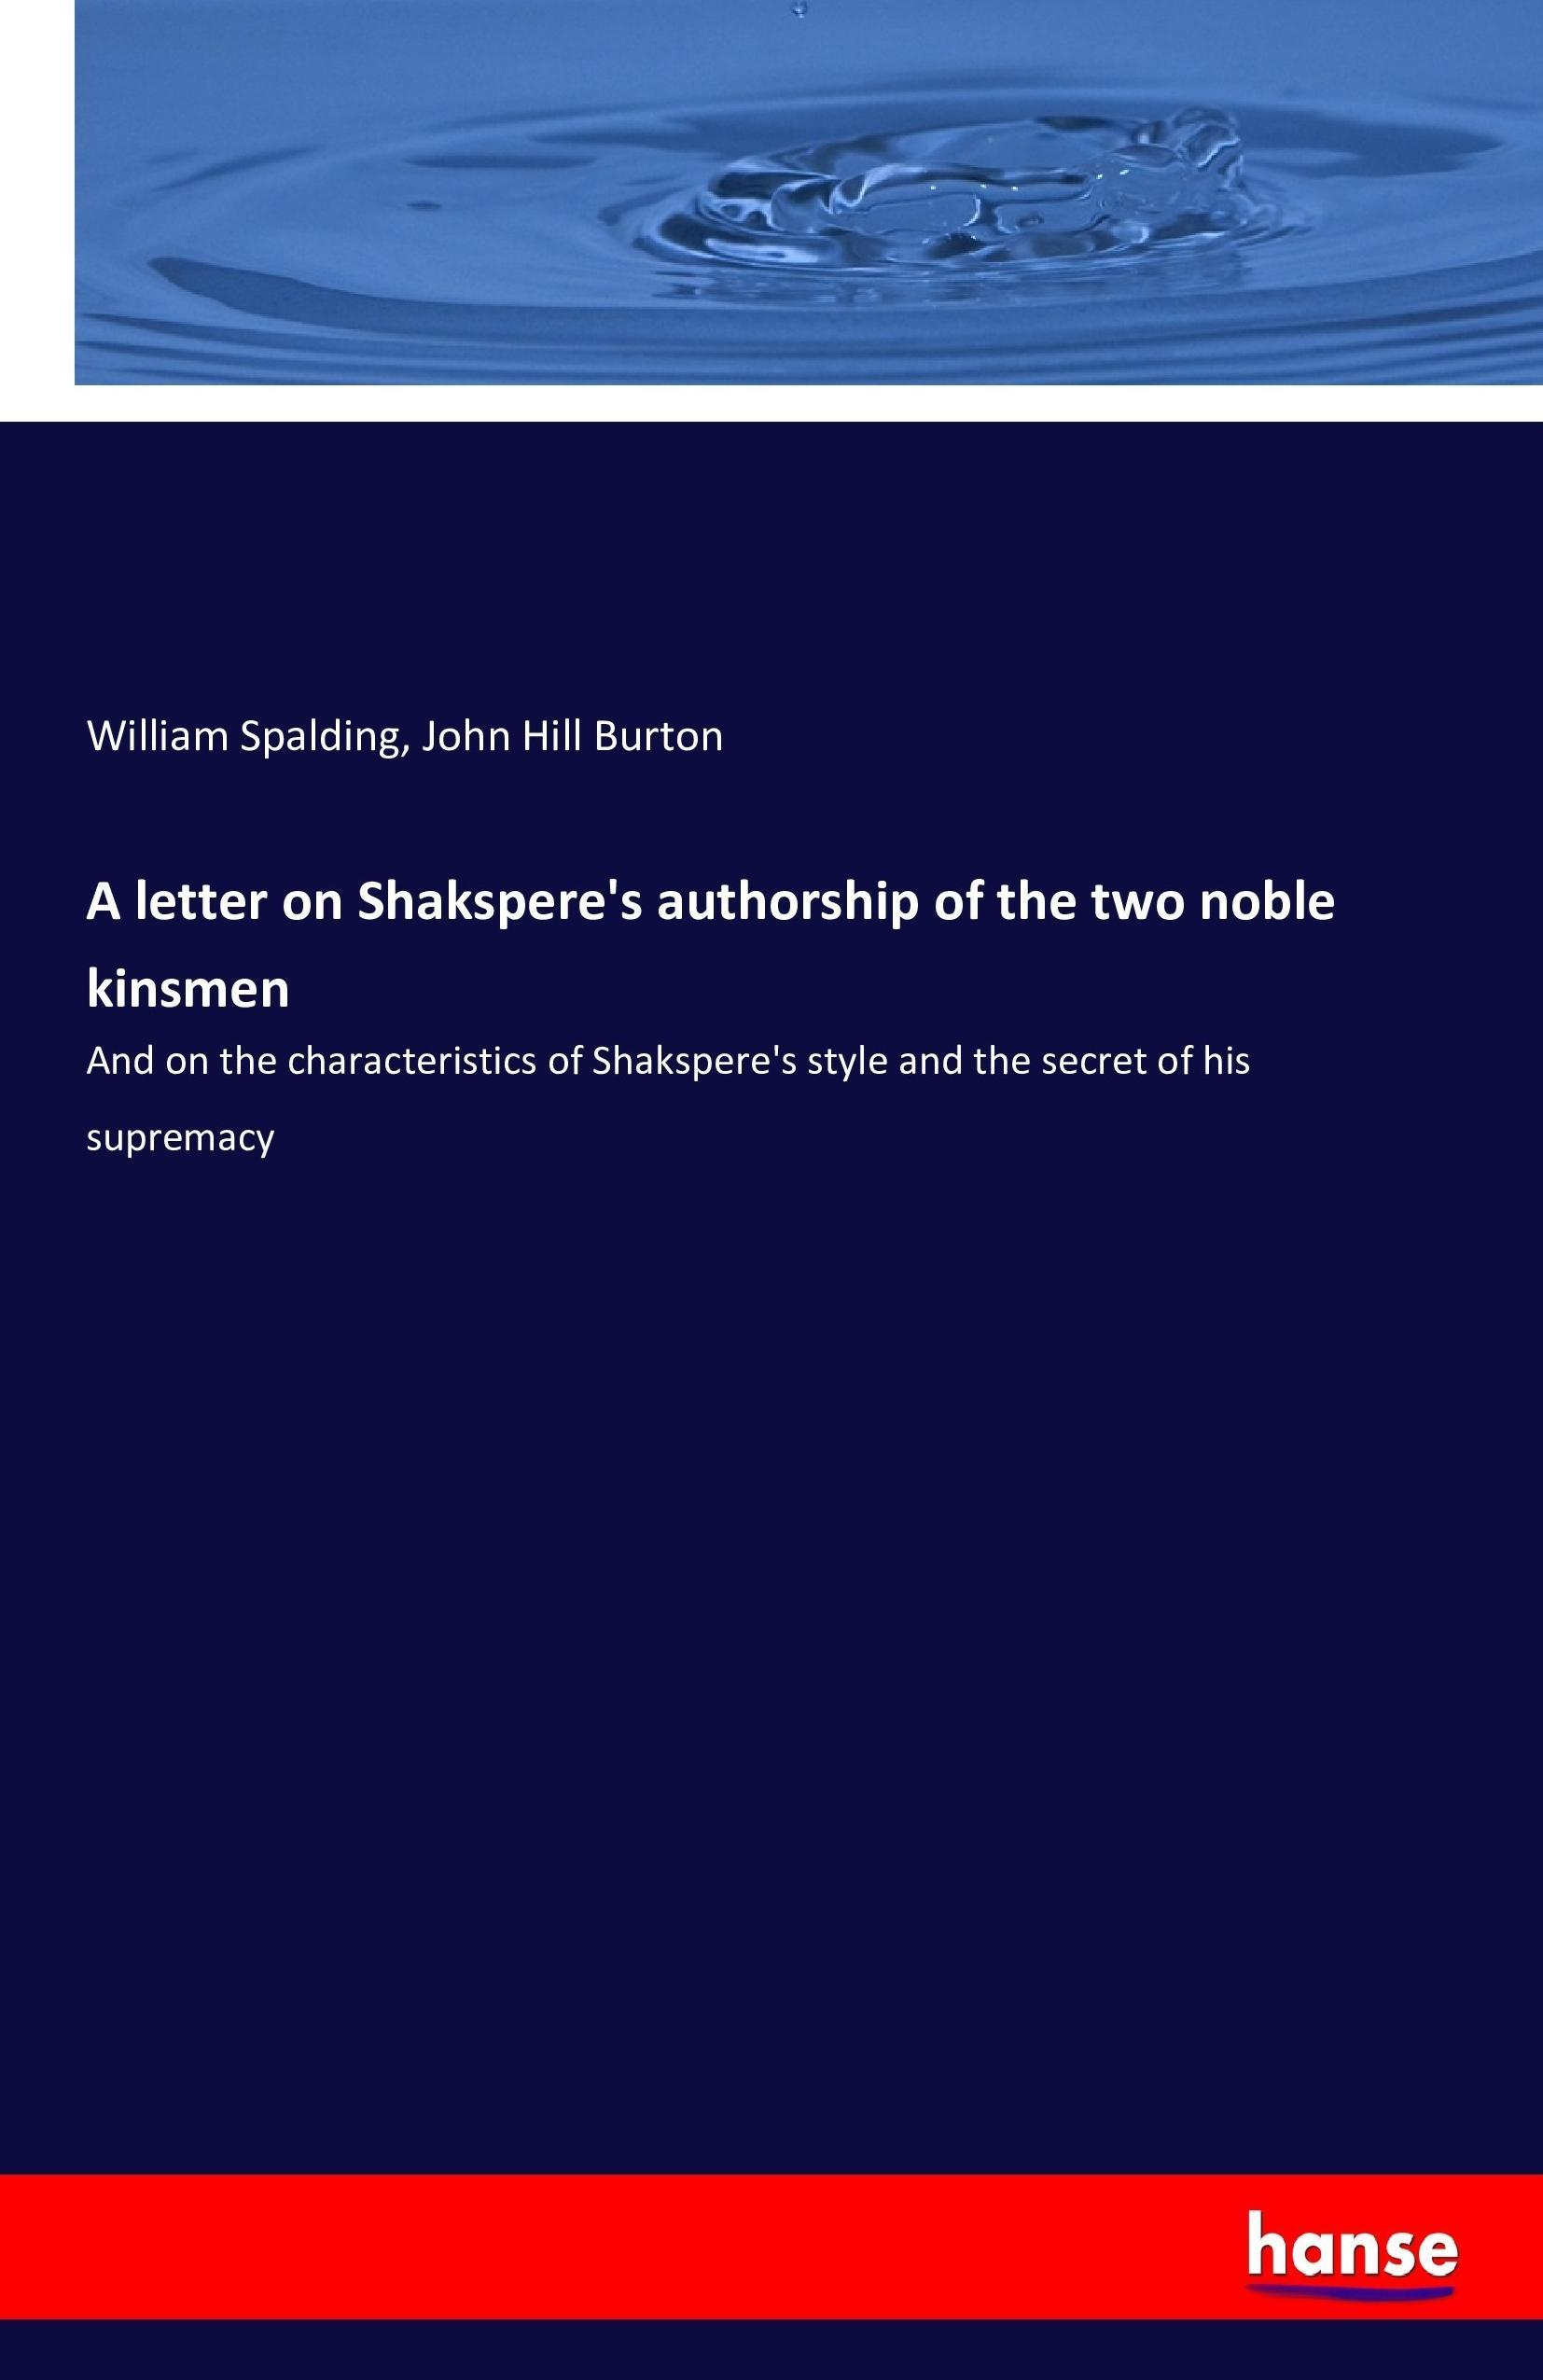 William Spalding / A letter on Shakspere's authorship of the t ... 9783742869883